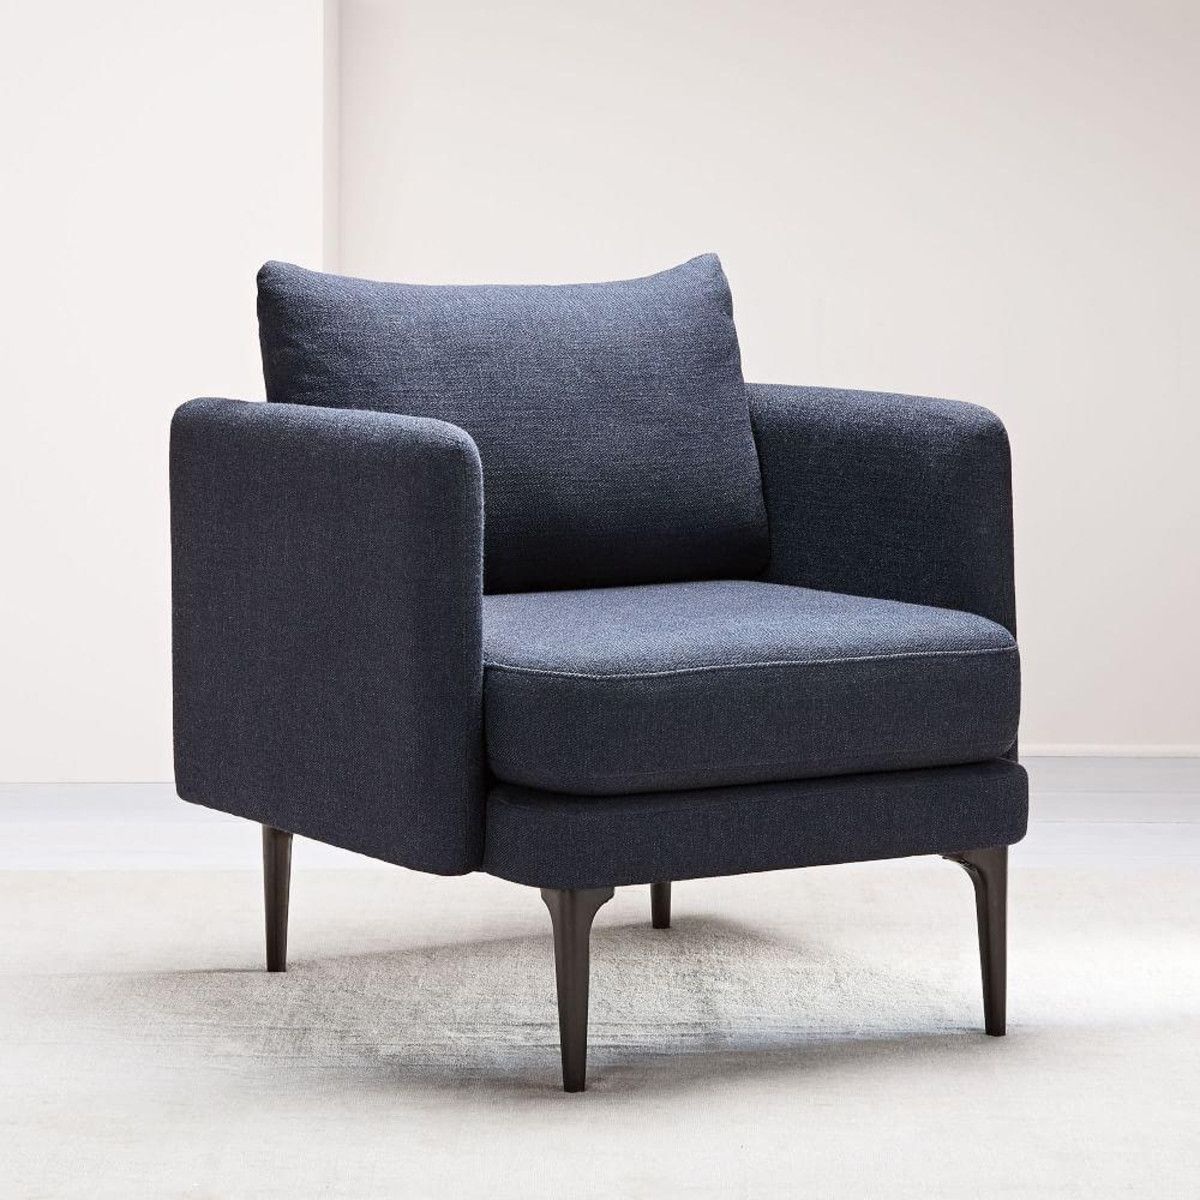 48+ Swivel chairs for living room contemporary ideas